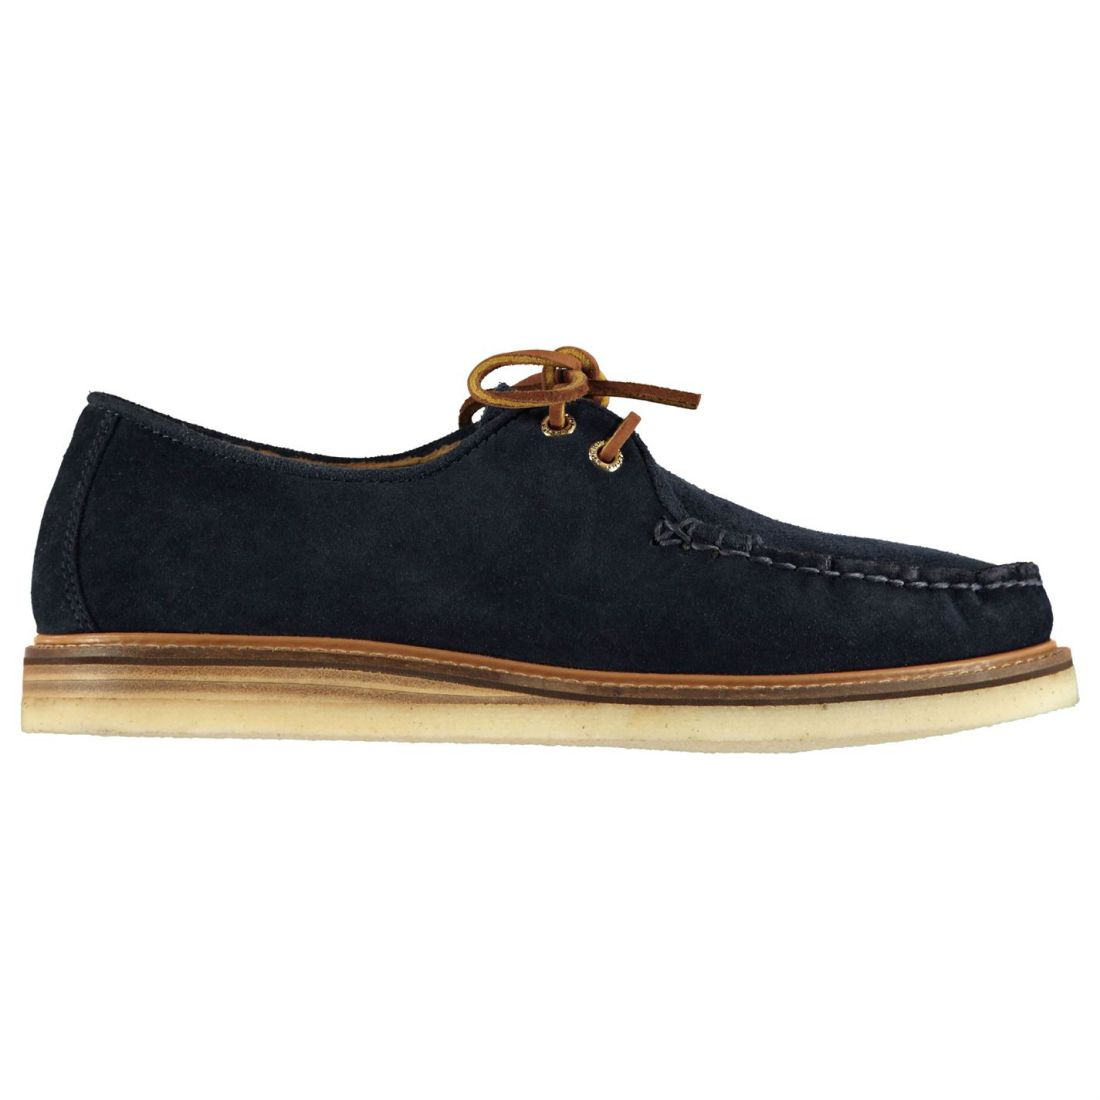 SPERRY Captain Crepe Cl99 Mens Gents Everyday shoes